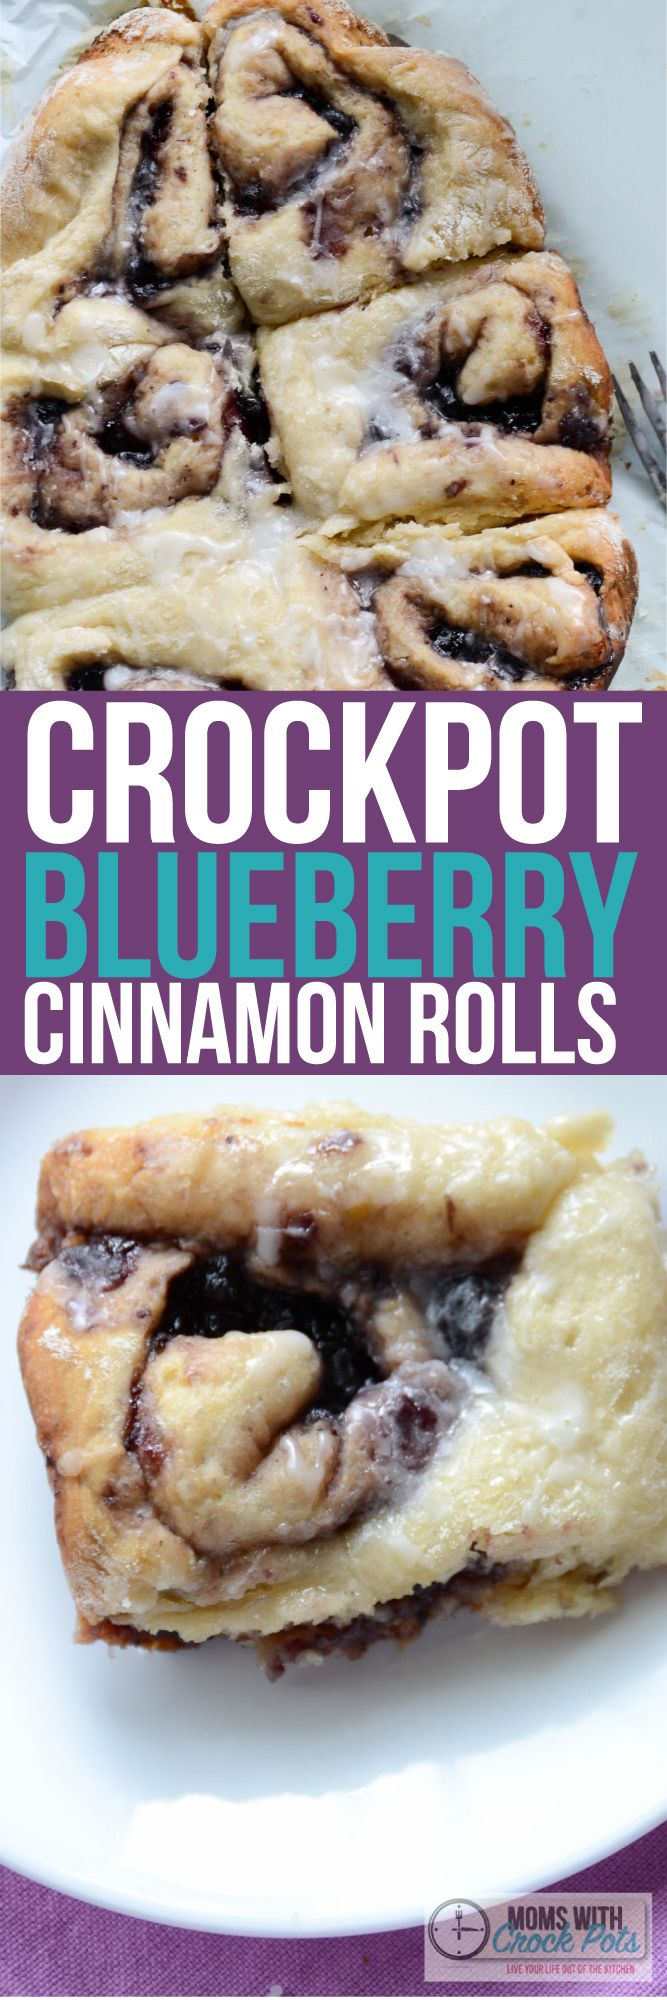 OMG! Who would have ever thought! You must pin/print this Crockpot Blueberry Cinnamon Rolls Recipe! It's amazing!